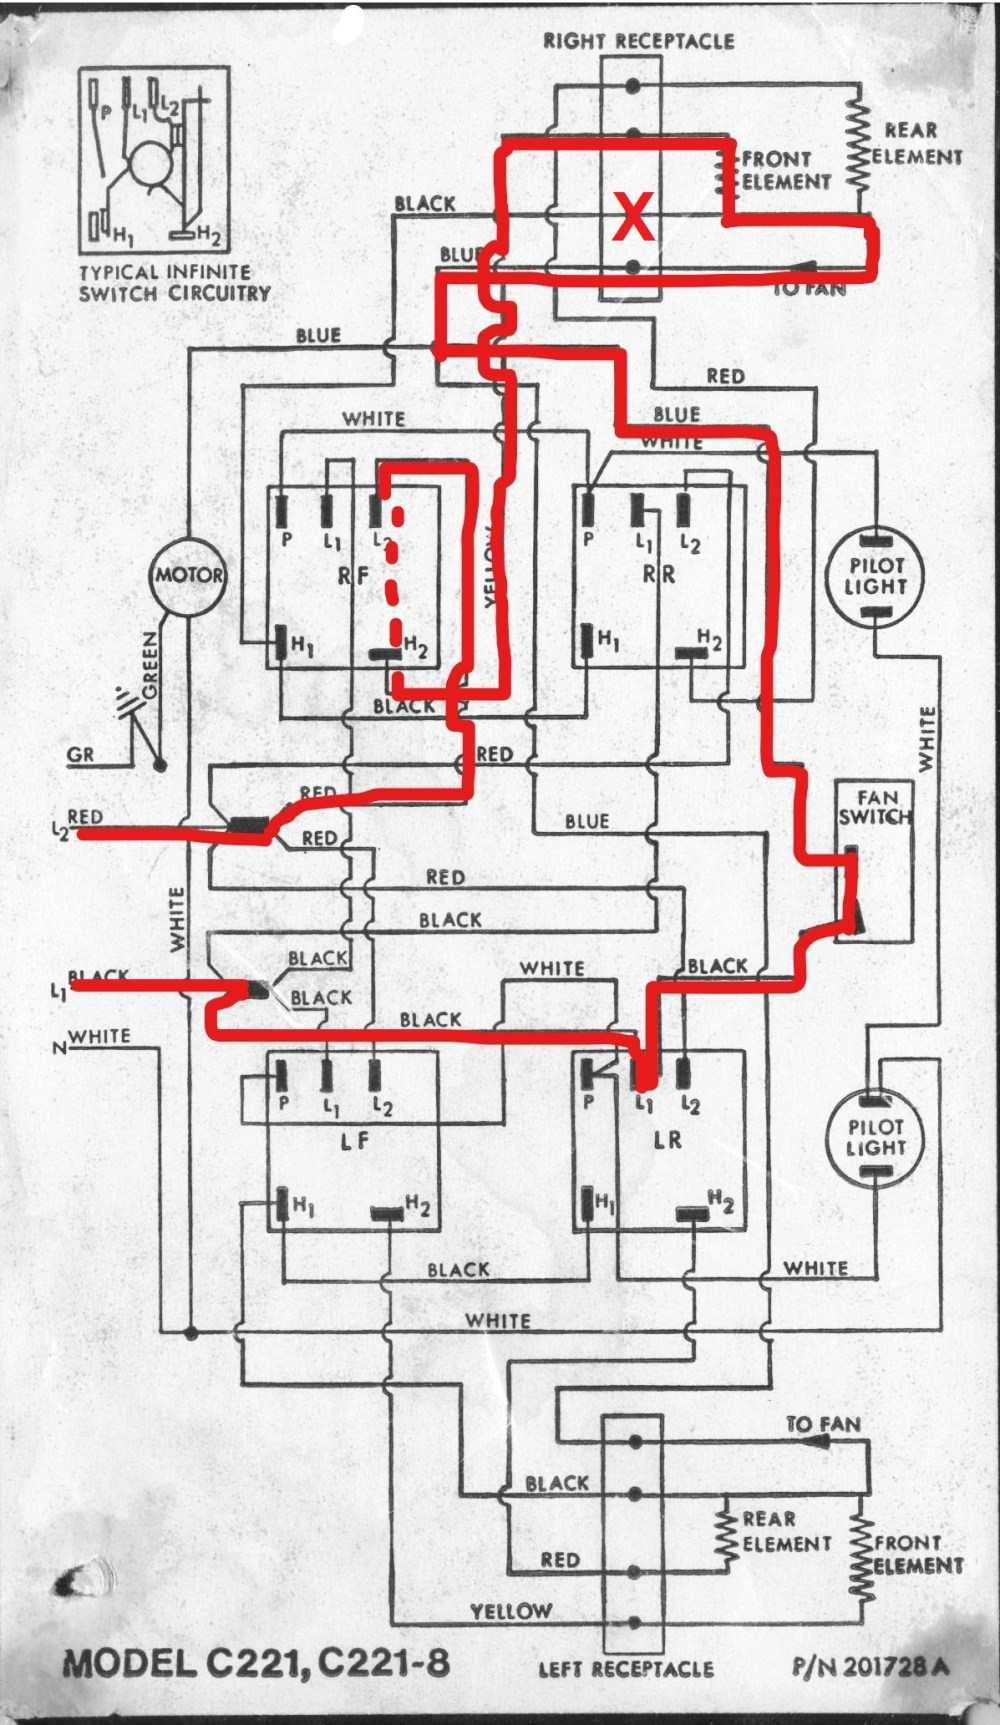 medium resolution of c221 wiring diagram with current flow illustrated